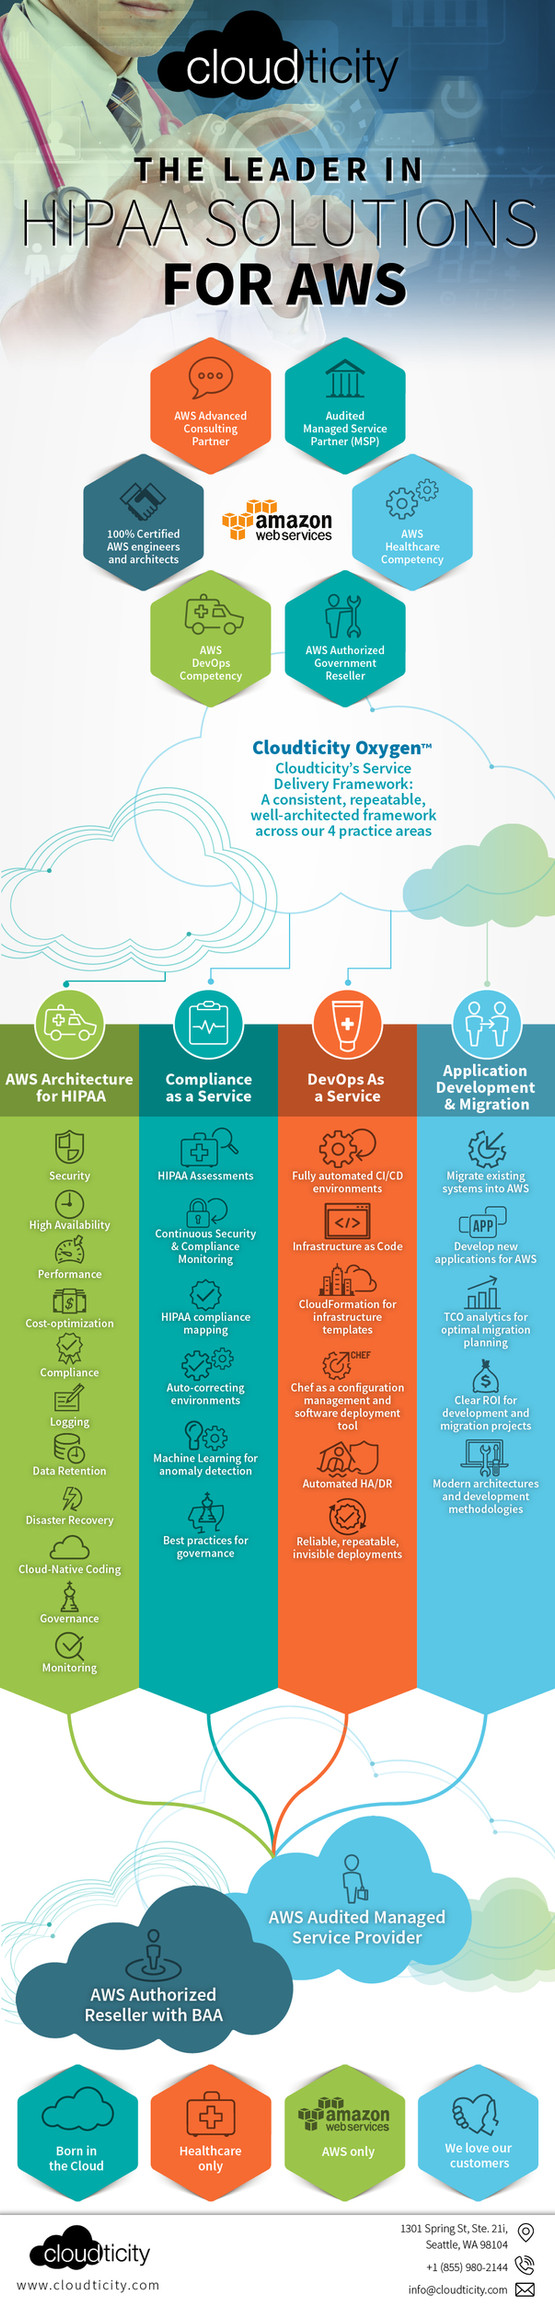 Cloudticity the leader in HIPAA Solutions for Aws